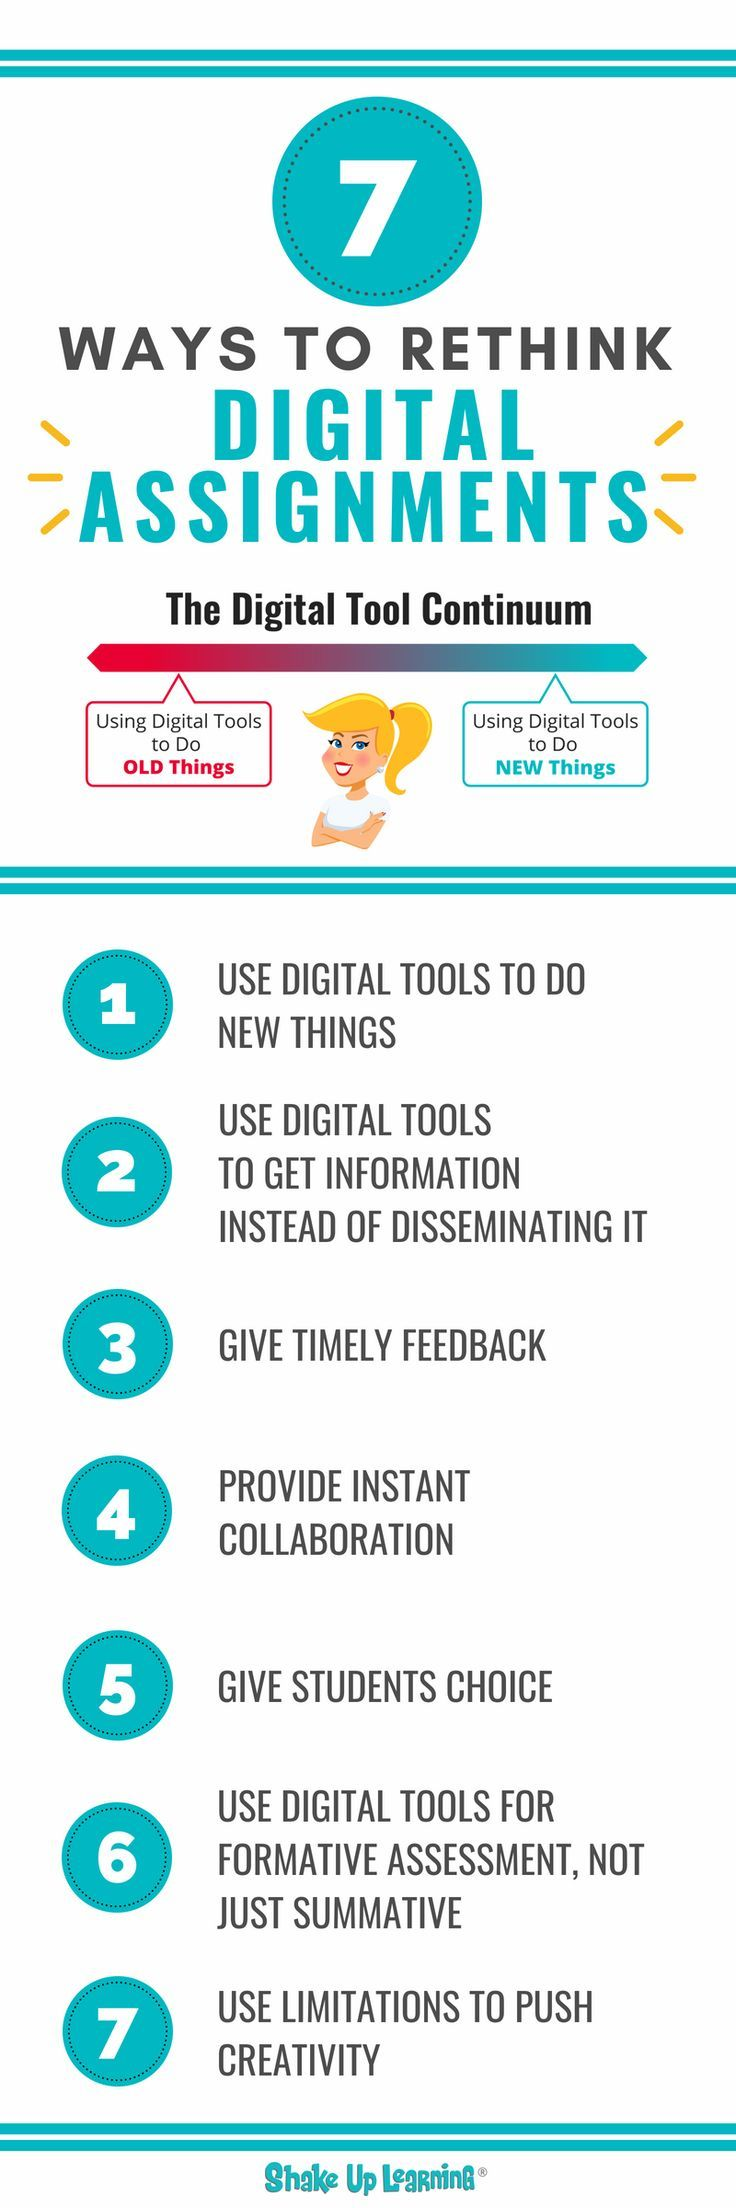 7 Ways to Rethink Digital Assignments